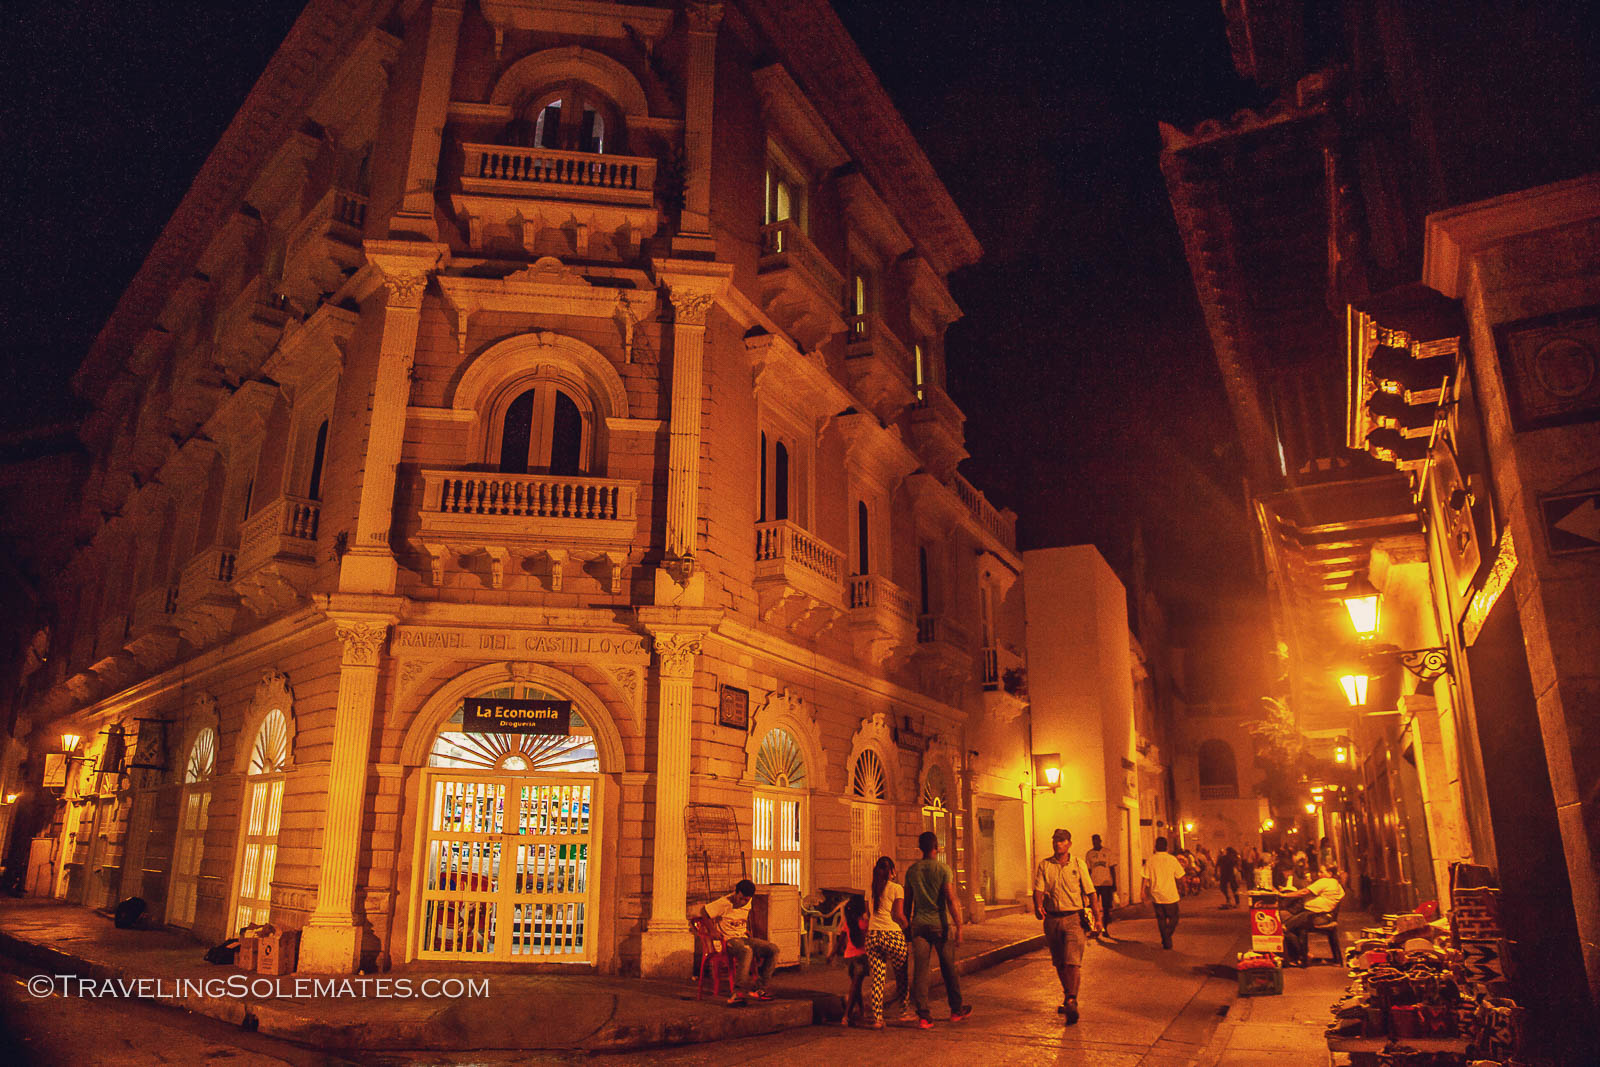 Old Cartagena at night, Colombia